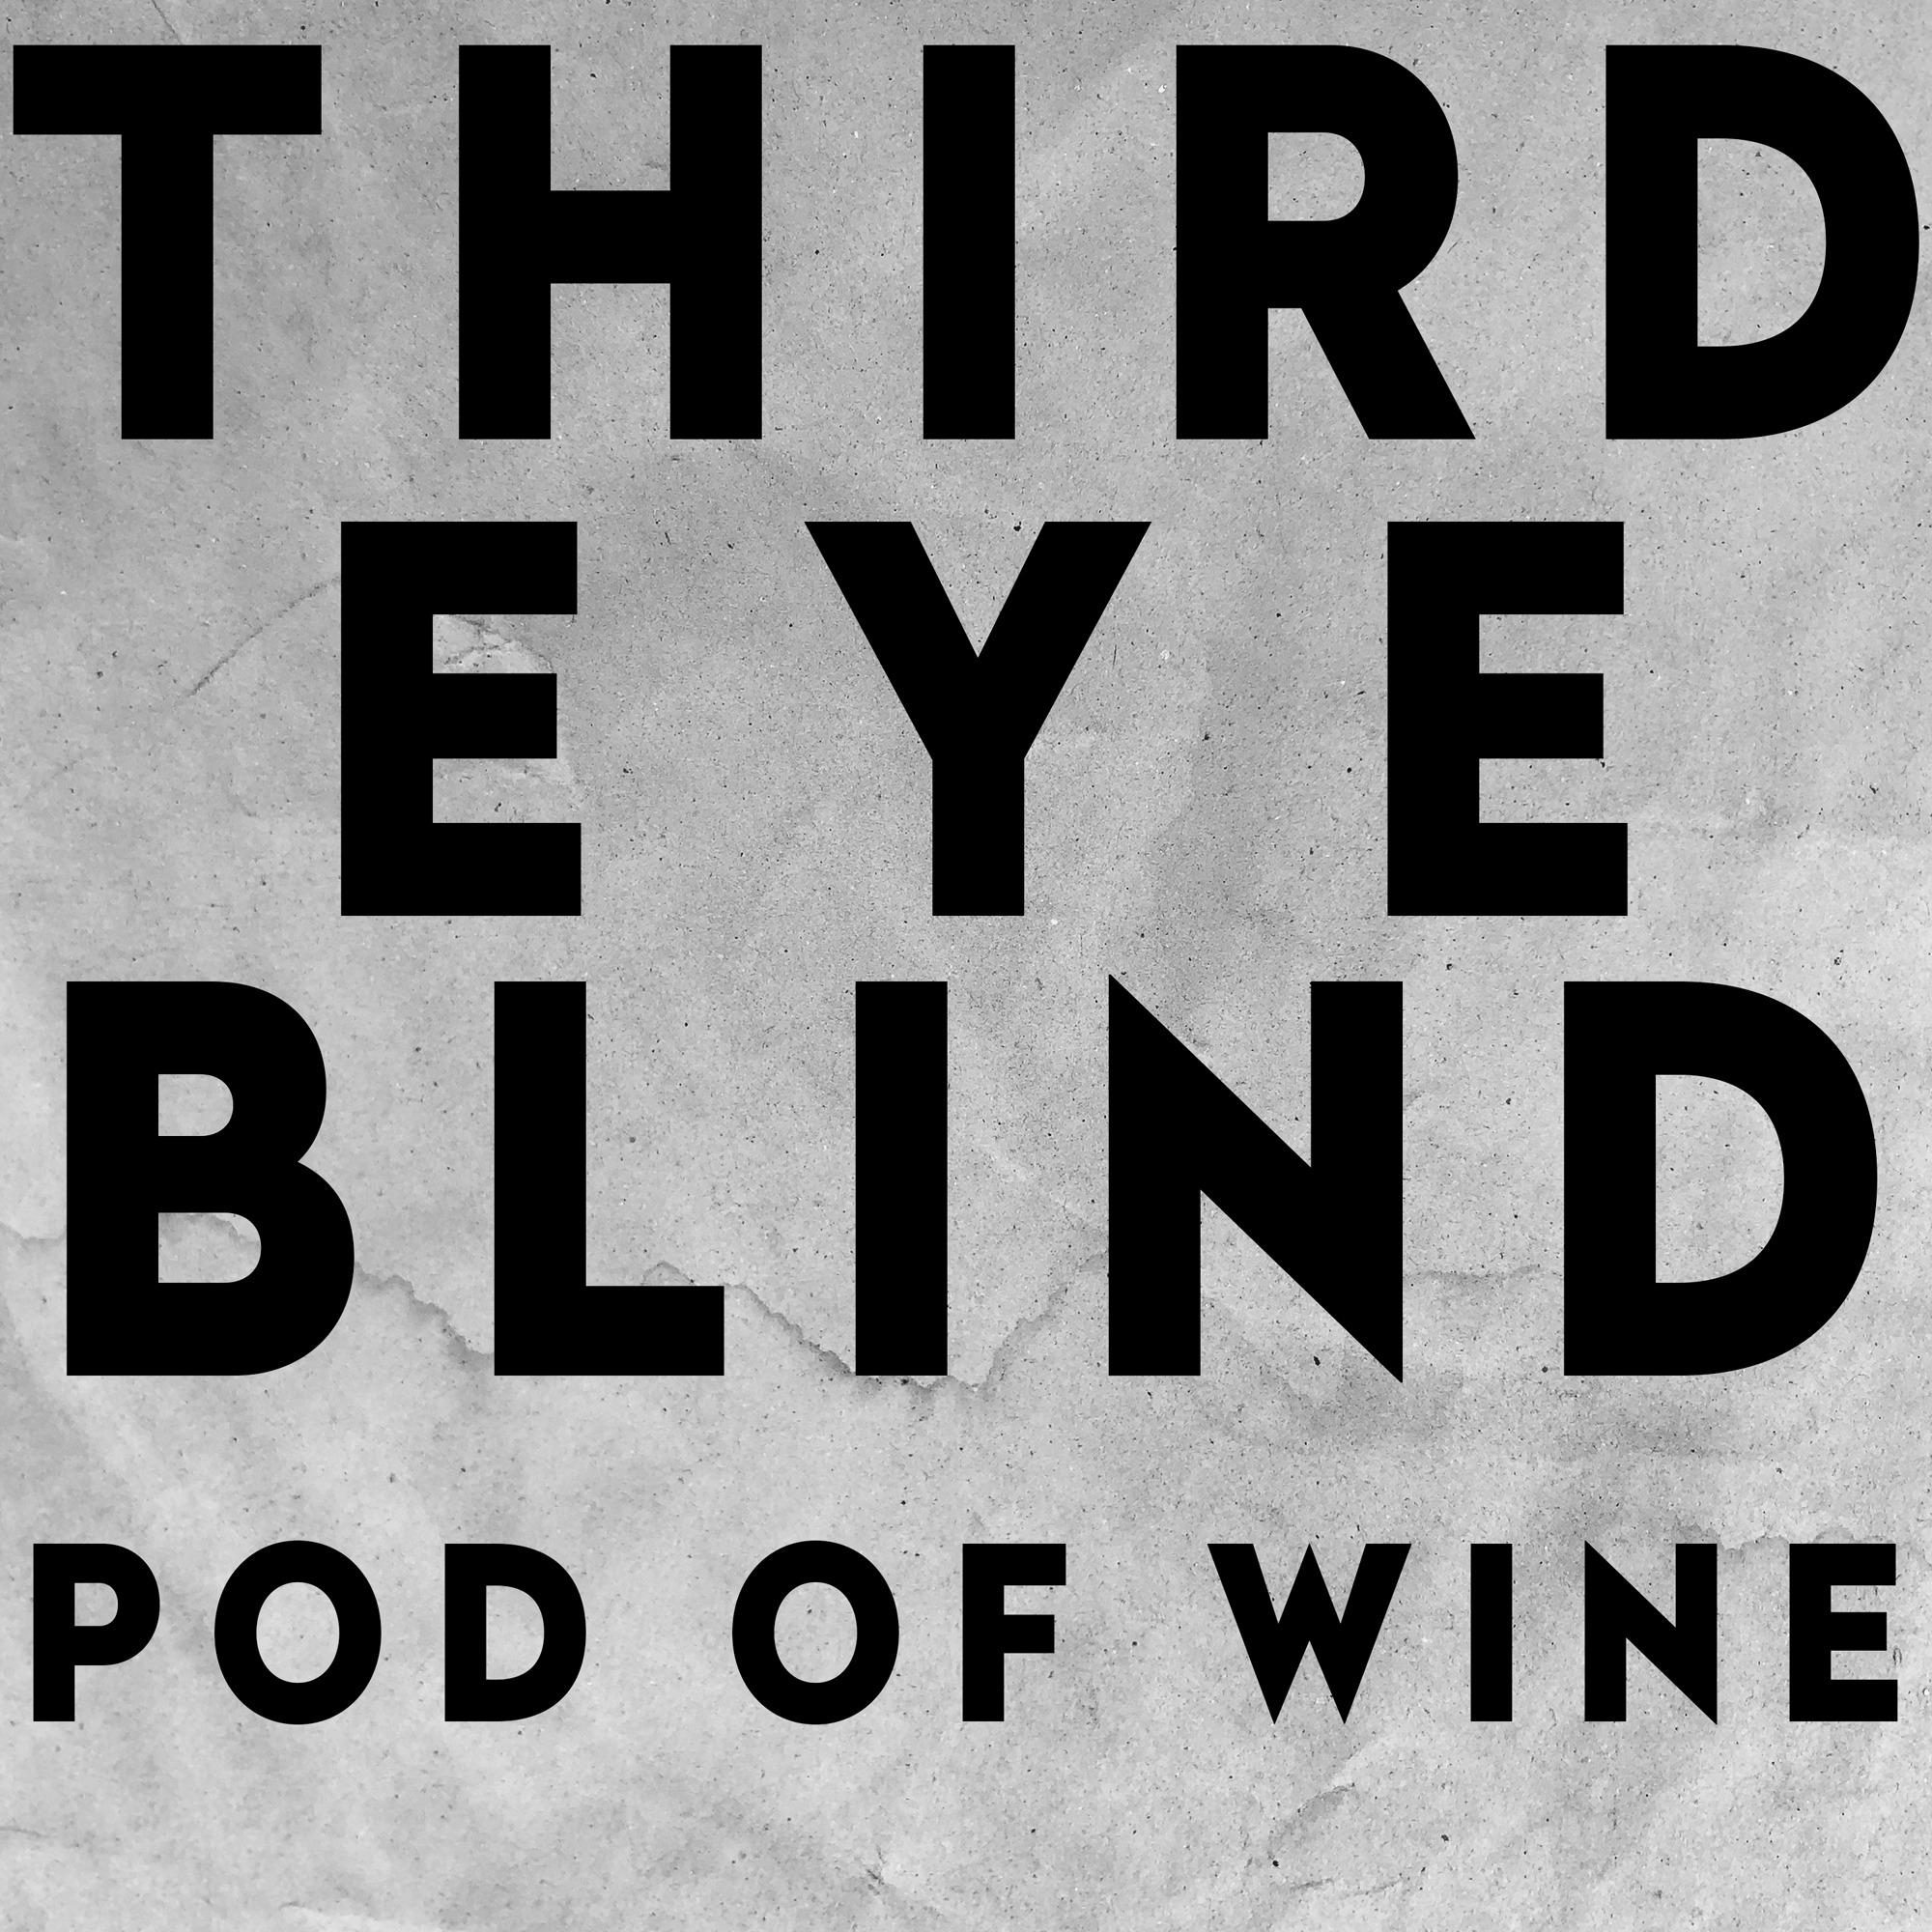 Third Eye Blind: Pod of Wine